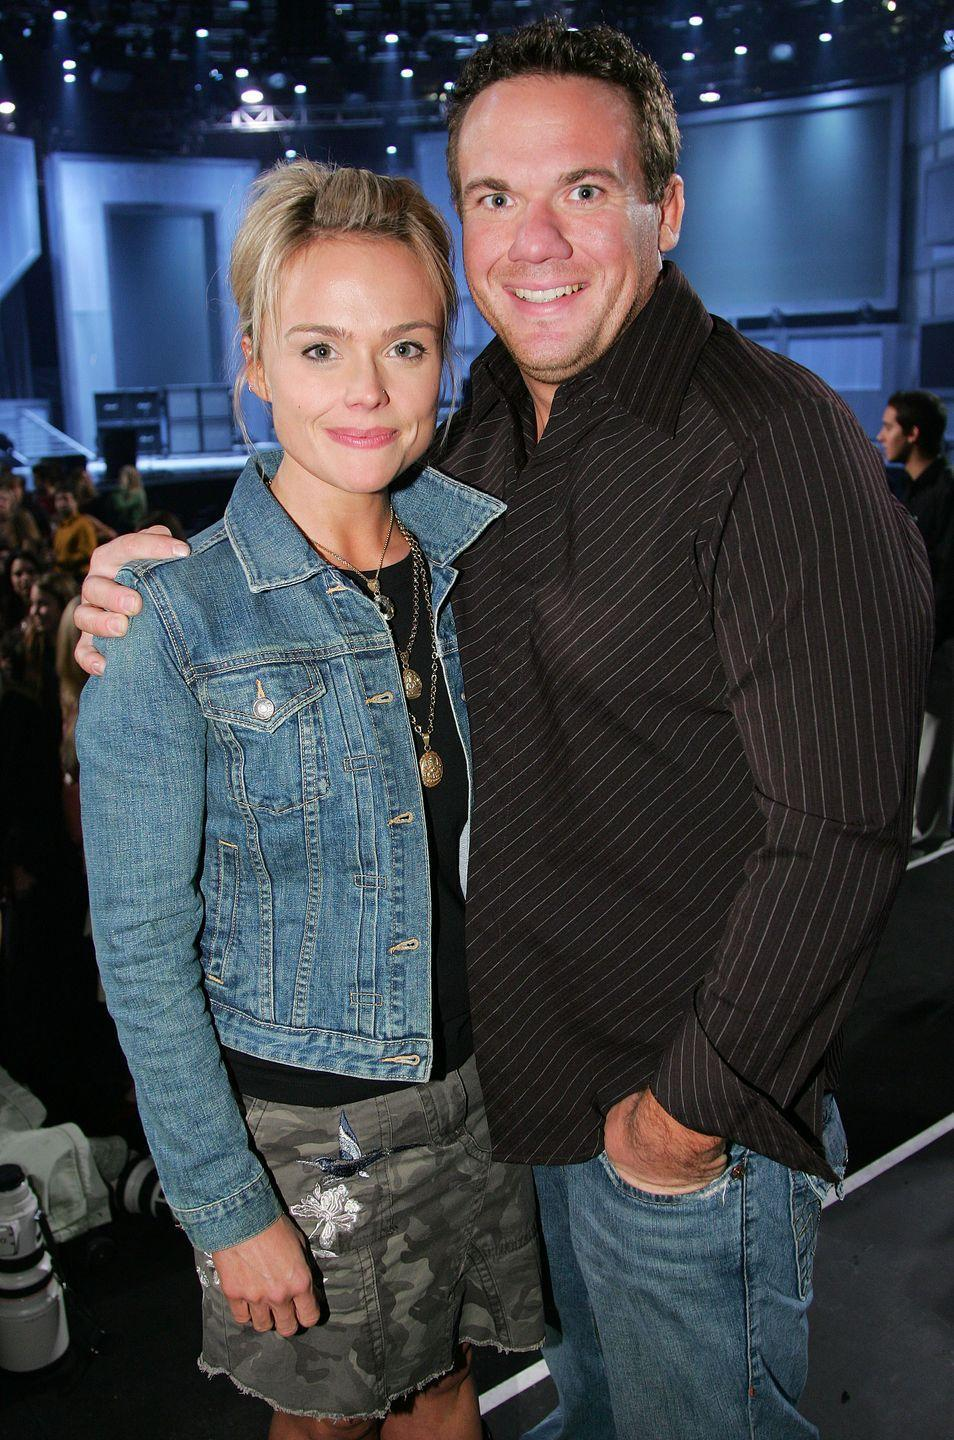 <p>Suzy Preston and Matt Hoover didn't just lose a ton of weight on season 2 of <em>The Biggest Loser</em>, they found one another. The couple appeared on the show in 2005 and got married a year later. Suzy was a finalist, while Matt was crowned the winner.</p>